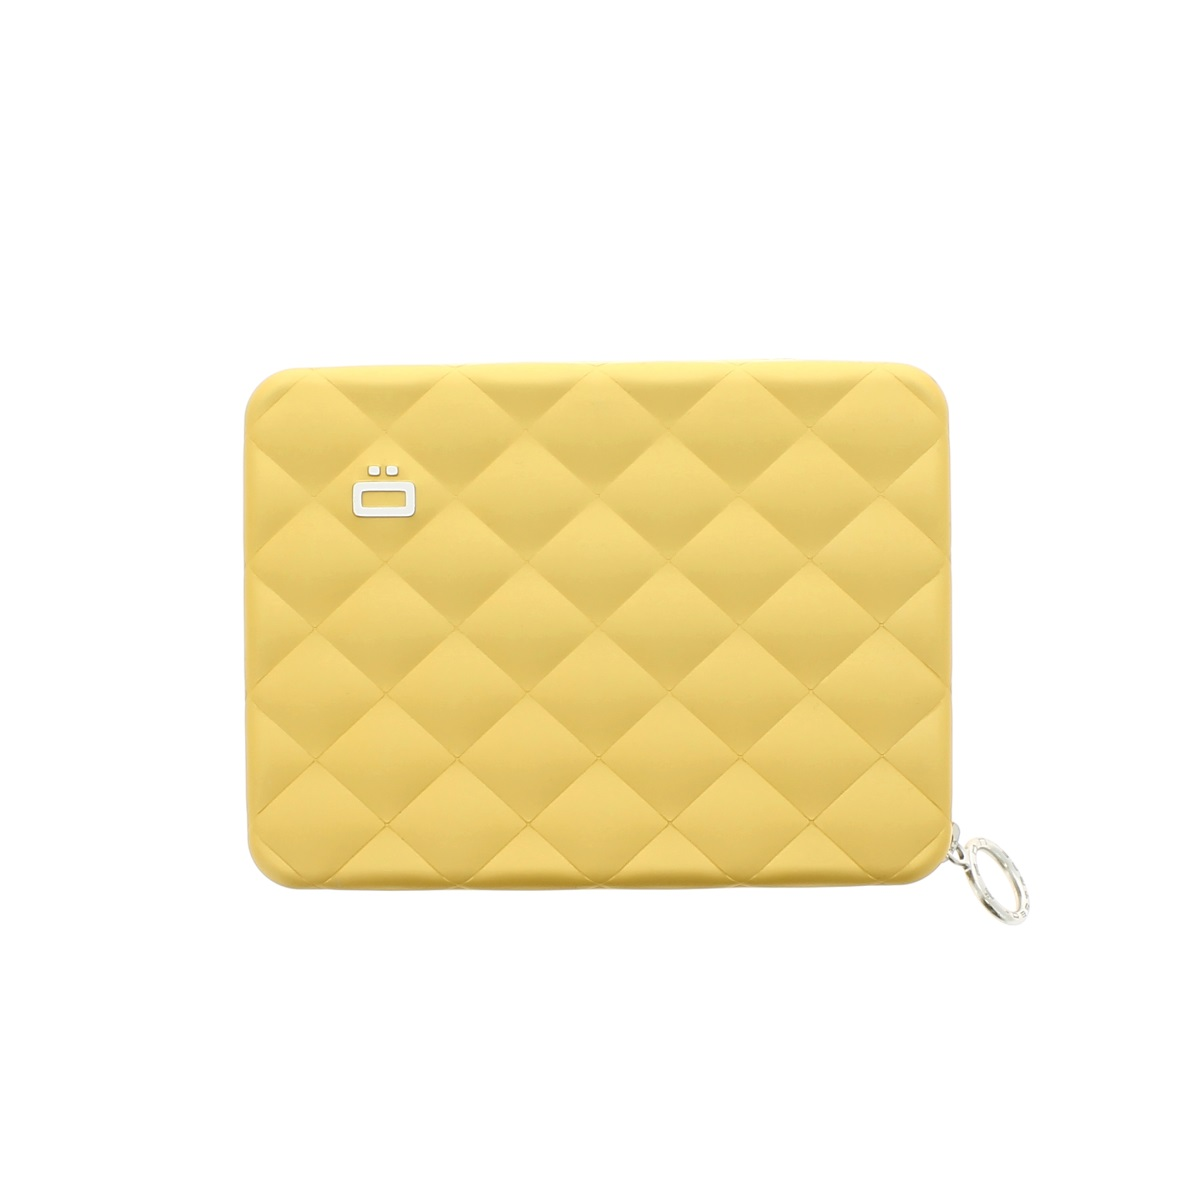 OGON Aluminum Wallet Quilted Passport - Gold